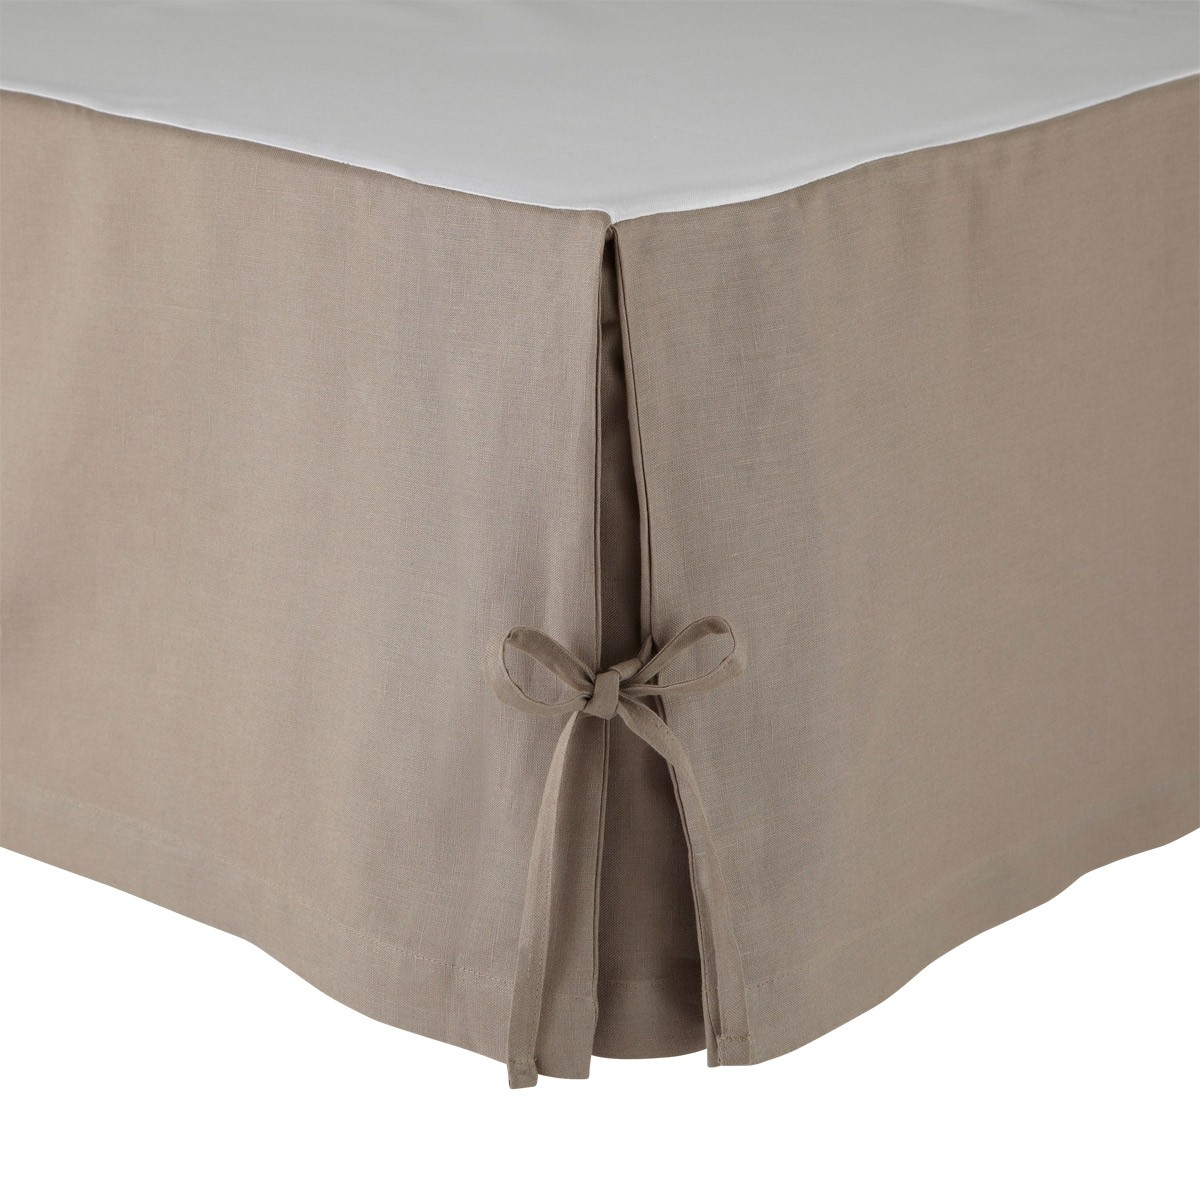 Cache sommier Lin Taupe 90 x 200 cm (photo)